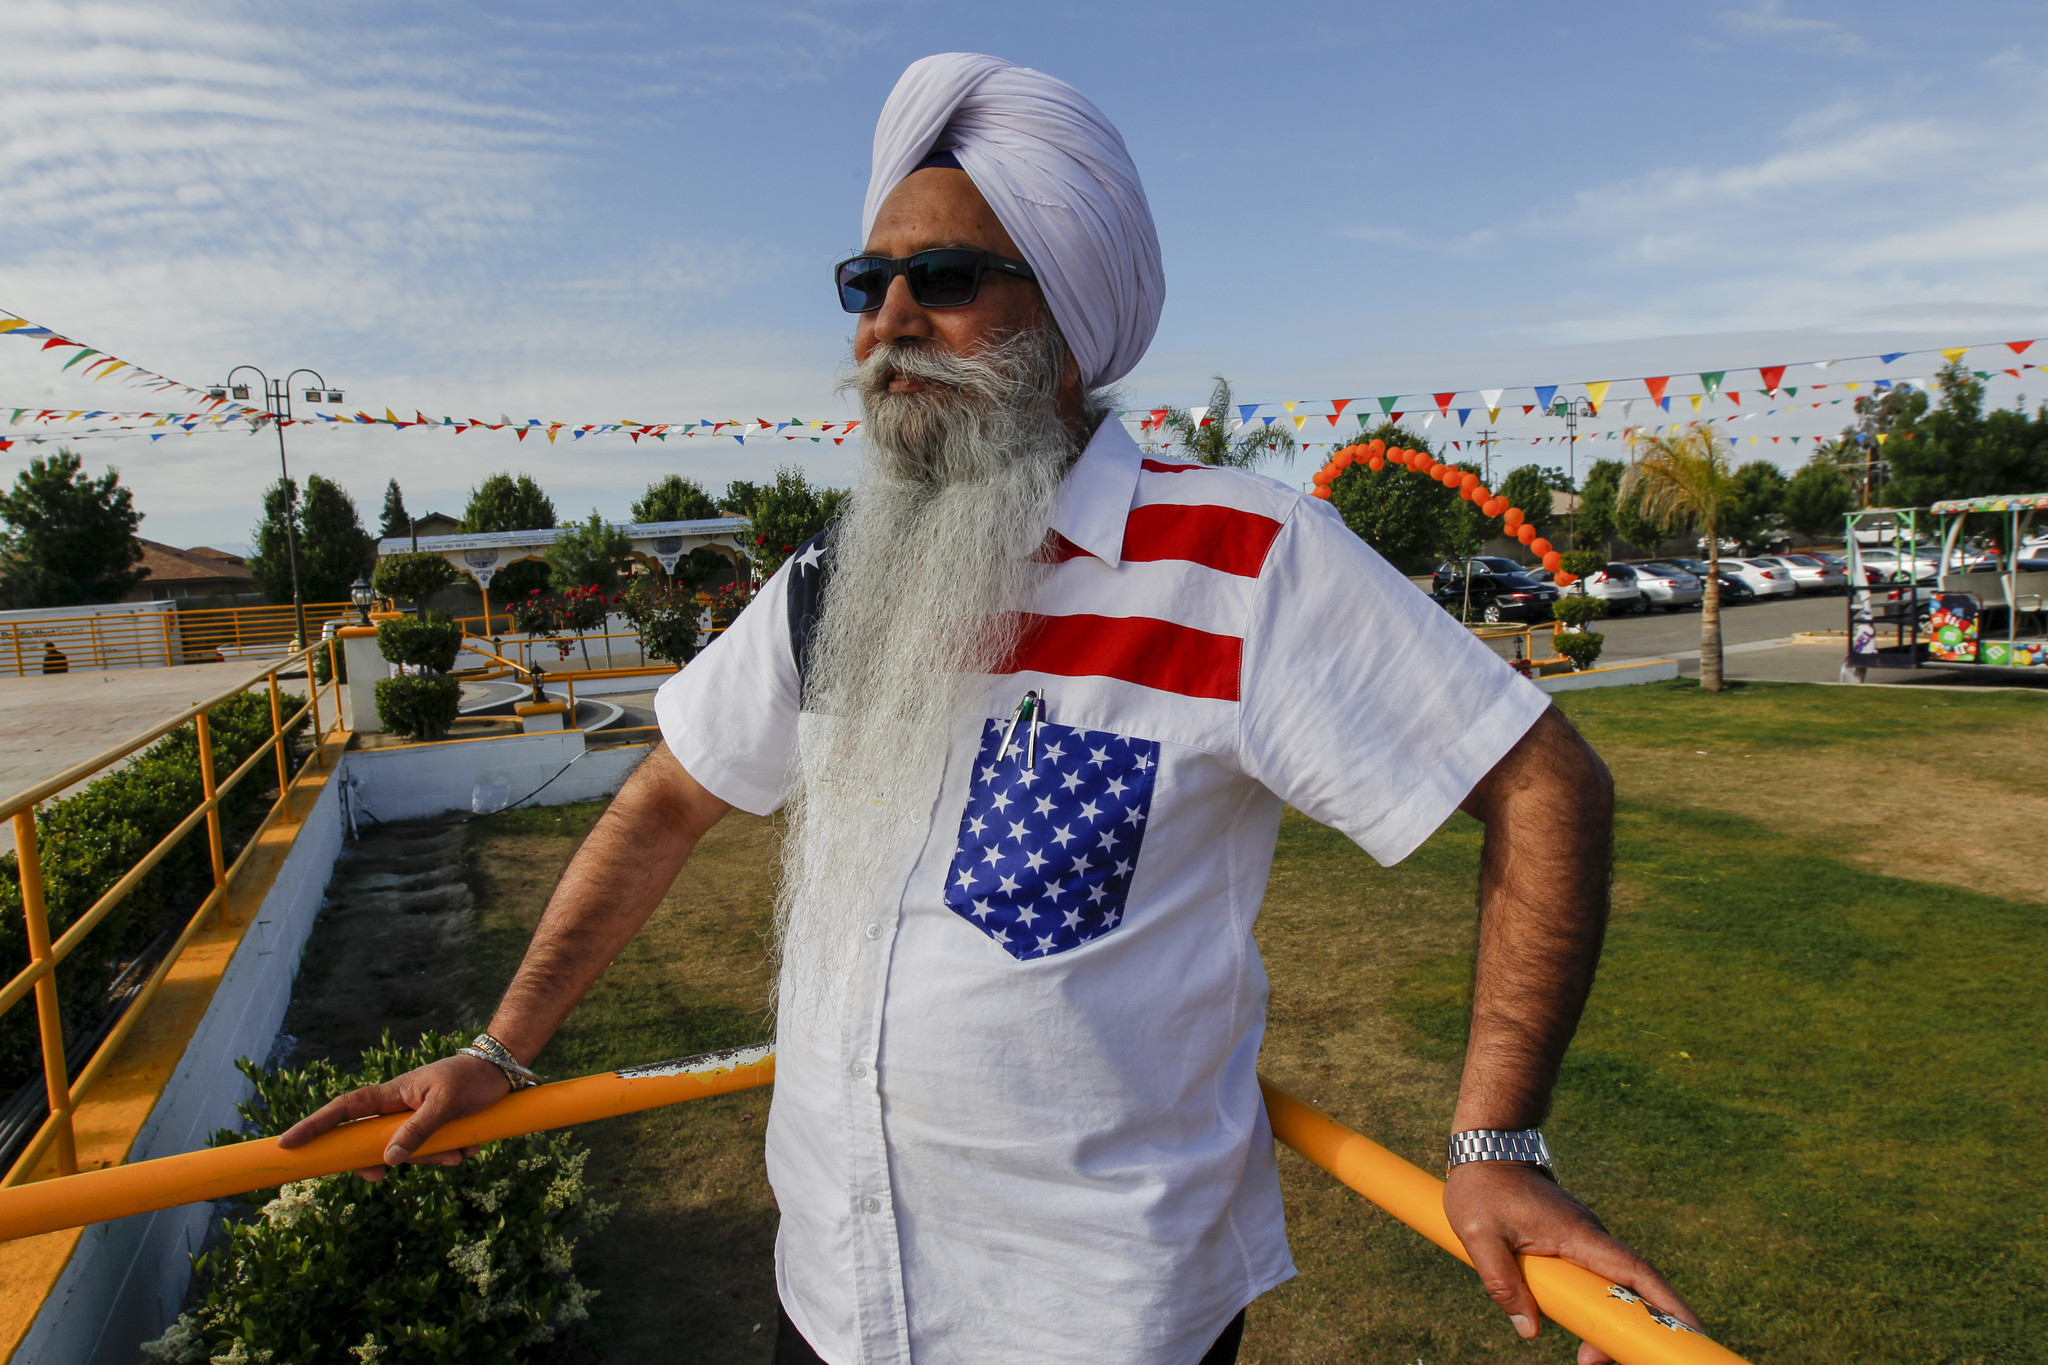 Gurcharan Singh, 63, celebrates a holiday parade at his gurdwara.